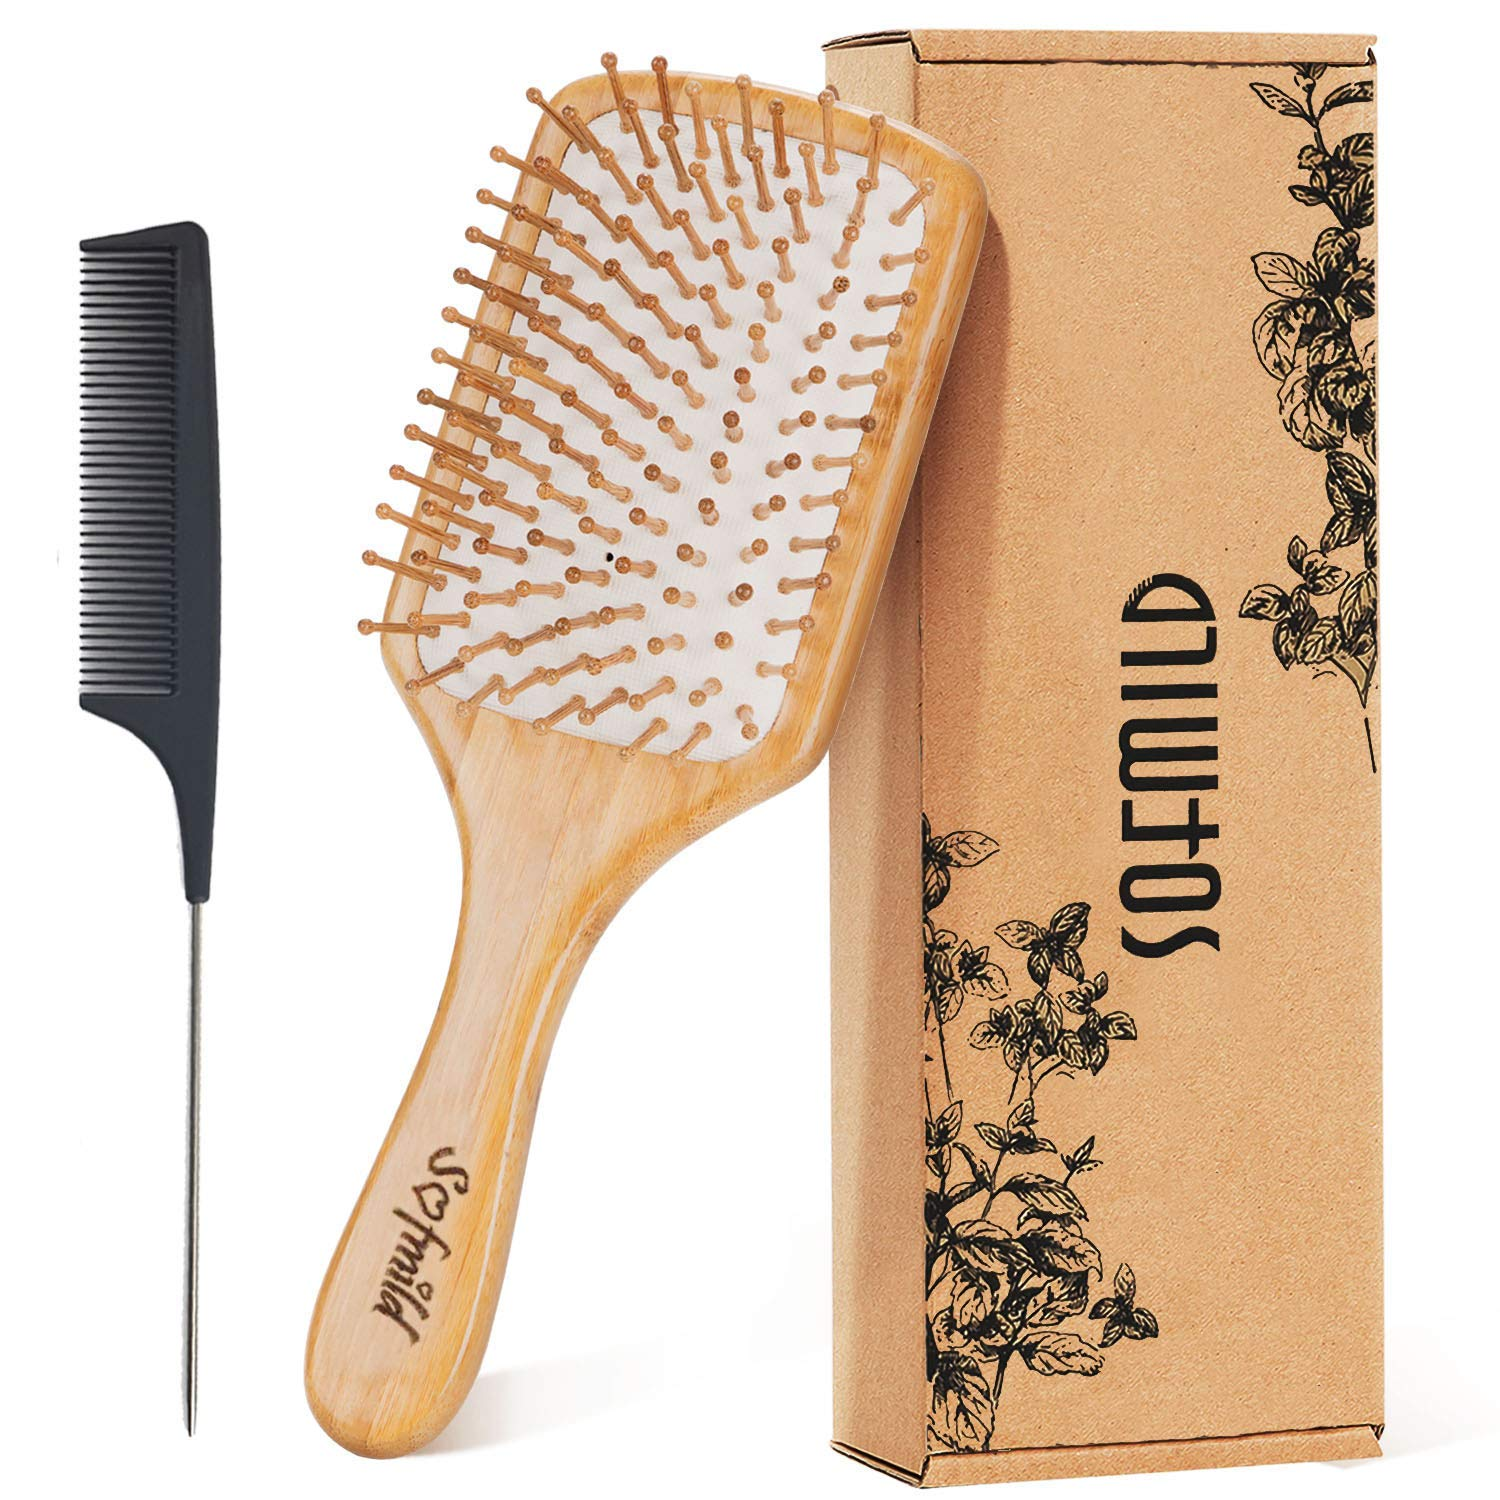 Natural Wooden Bamboo Brush - Eco Friendly Paddle Hairbrush for Women Men and Kids